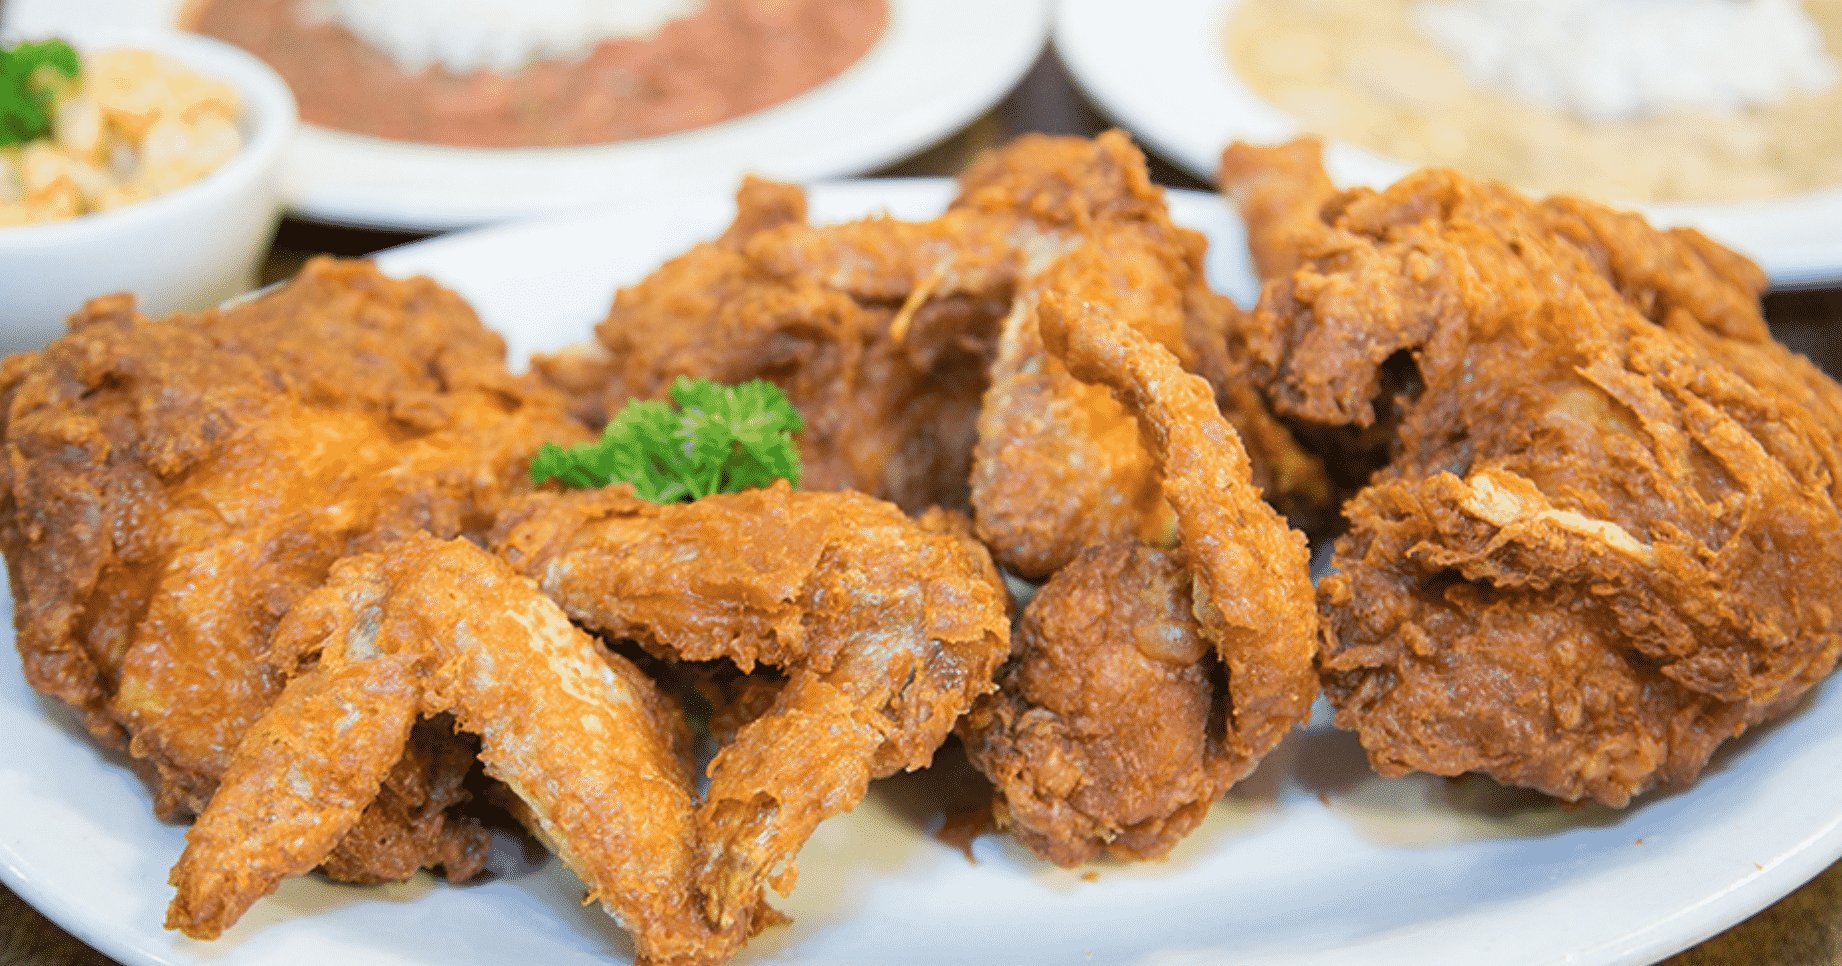 Famous fried chicken in America